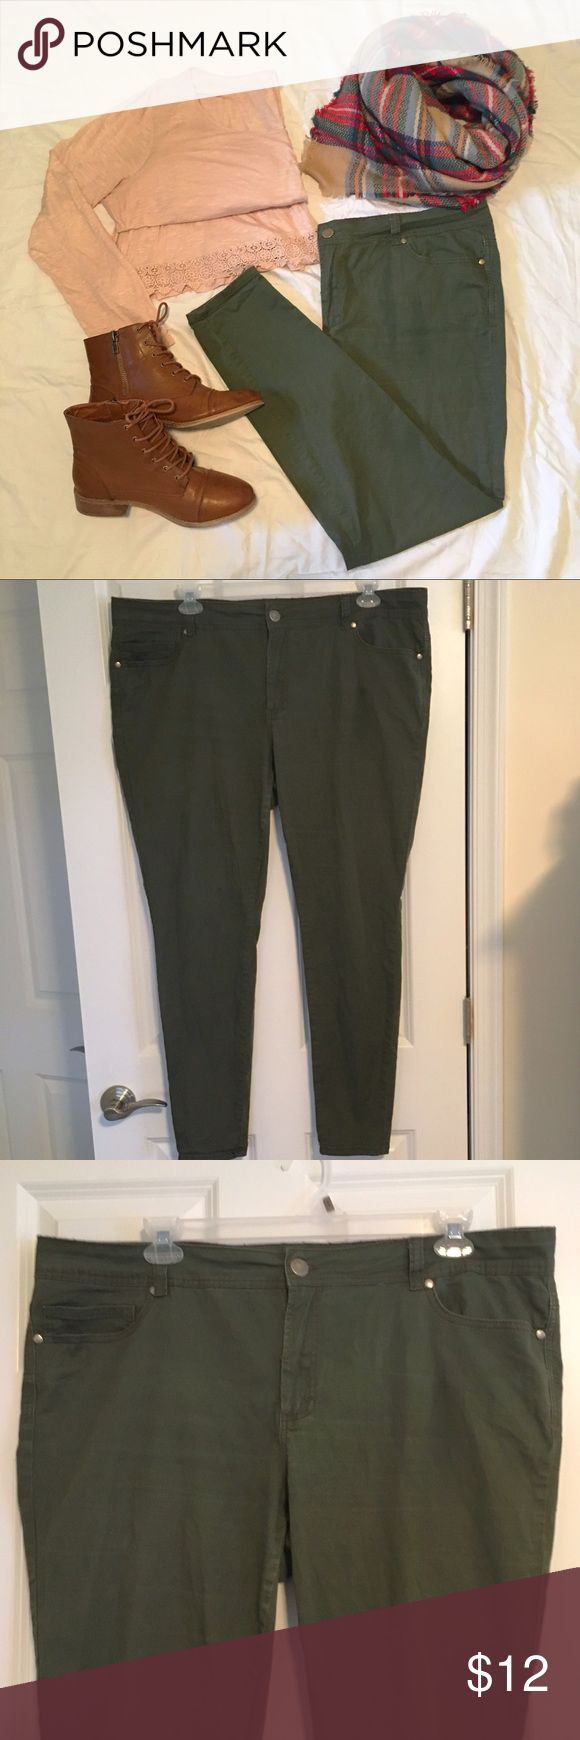 Plus Olive Green Skinny Jeans Plus size olive green skinny jeans. Great for adding a splash of color to different kinds of outfits! Good used condition, some wear on inner thighs (as shown in picture 5) and minimal fraying of thread around the waistband (as shown in picture 6). Forever 21 Jeans Skinny